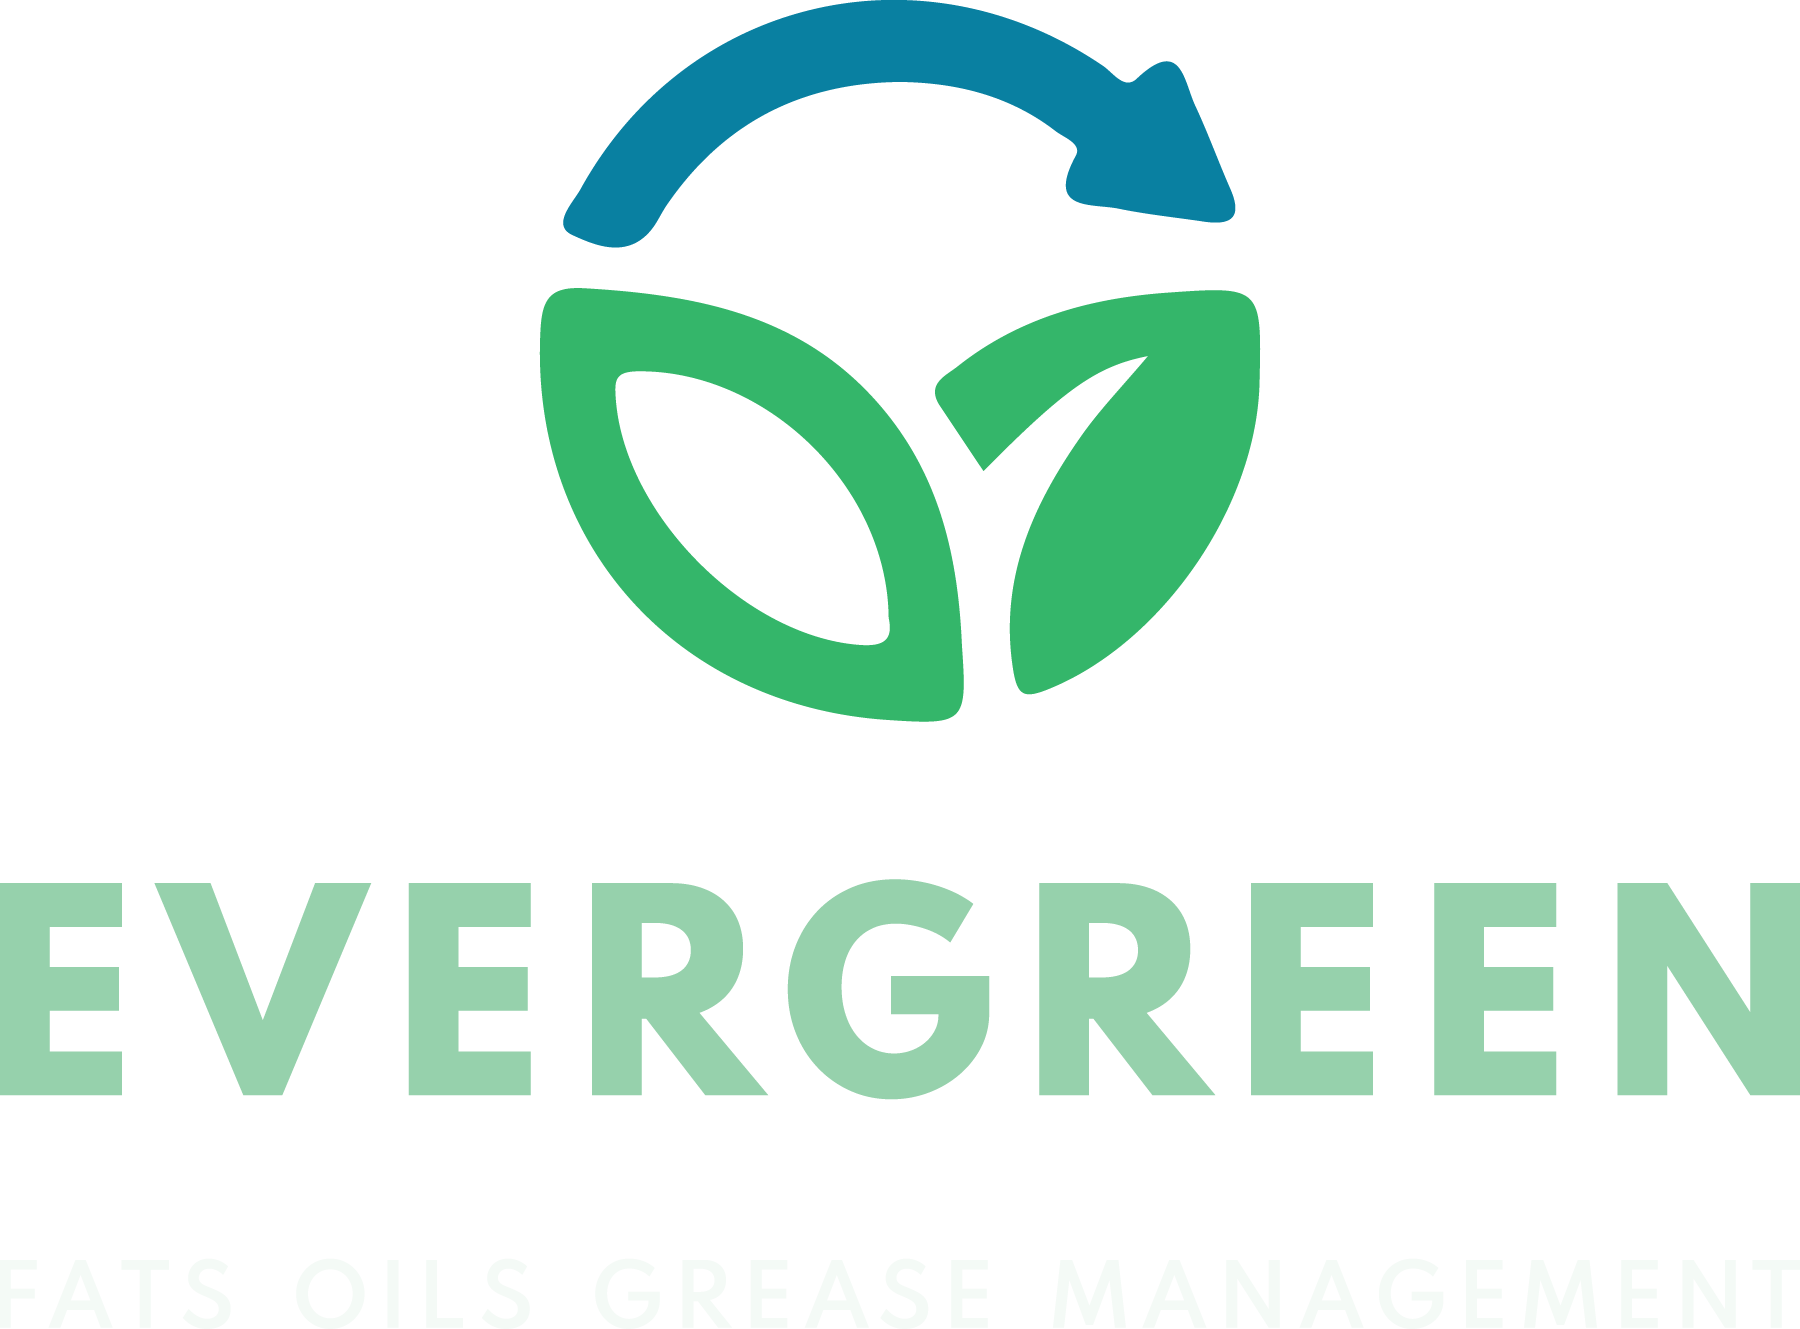 Evergreen Grease Services - National Fats Oils & Grease Management